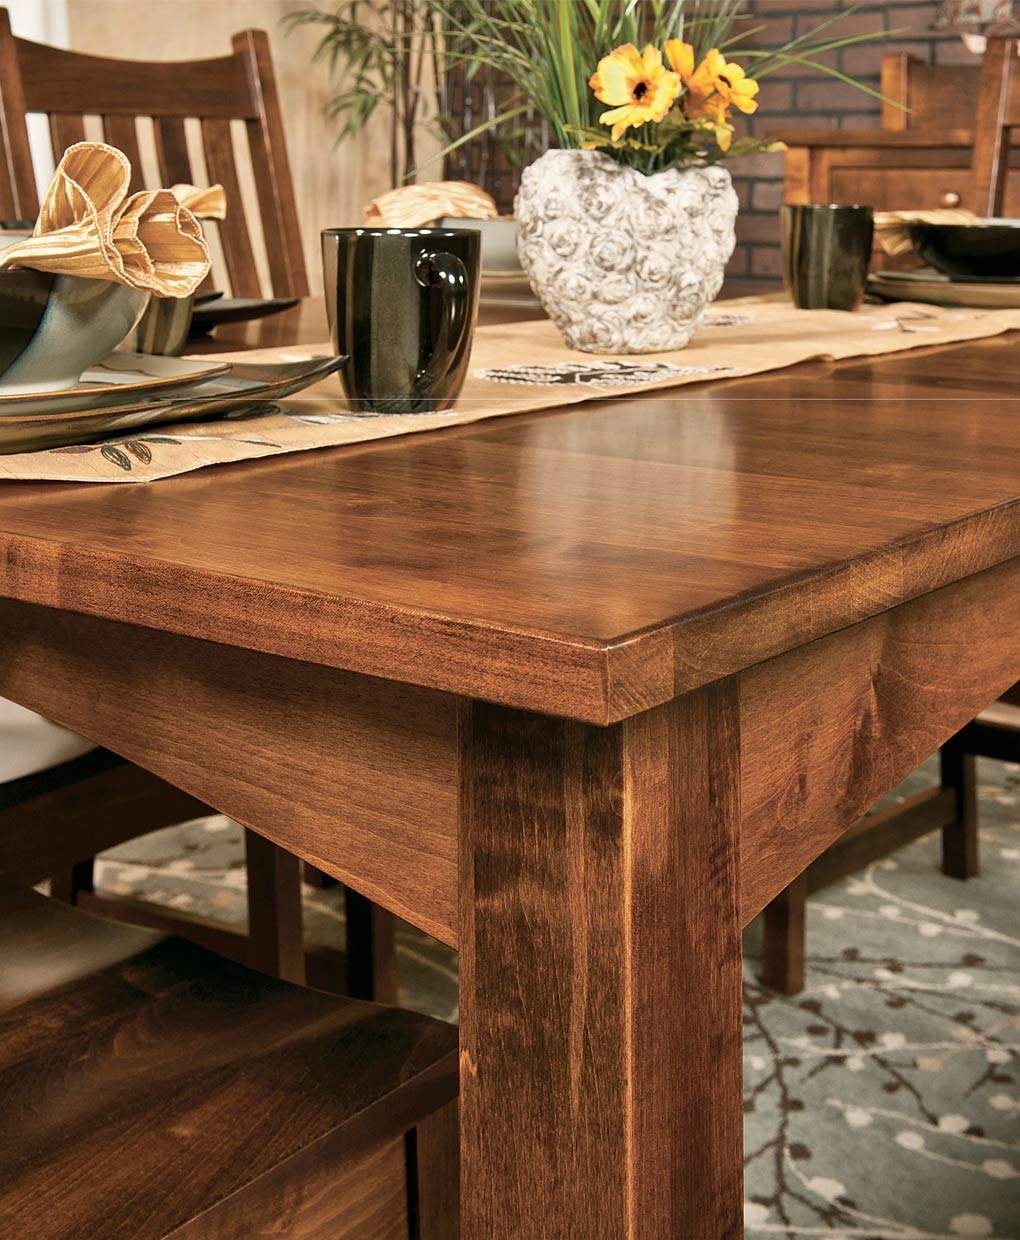 Heidi Amish Leg Table Set [Detail]